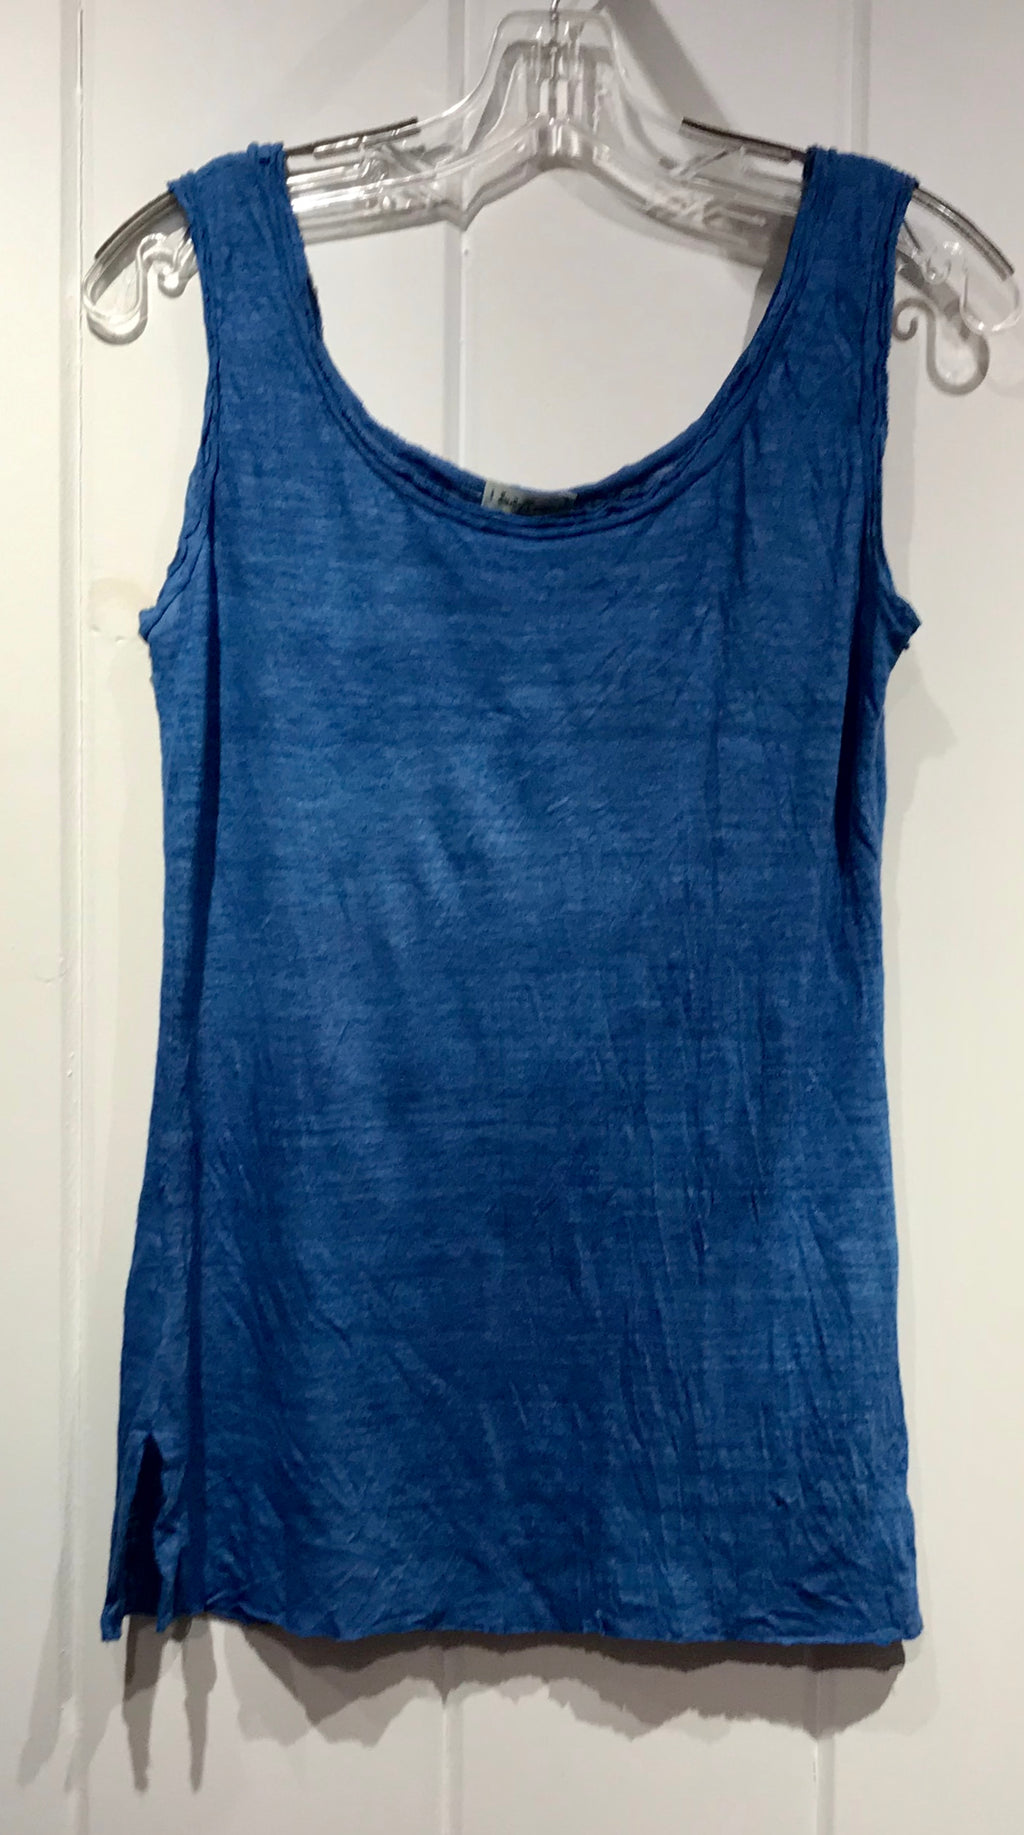 Judy Tampa Linen Knit Tank in Indigo on Sale